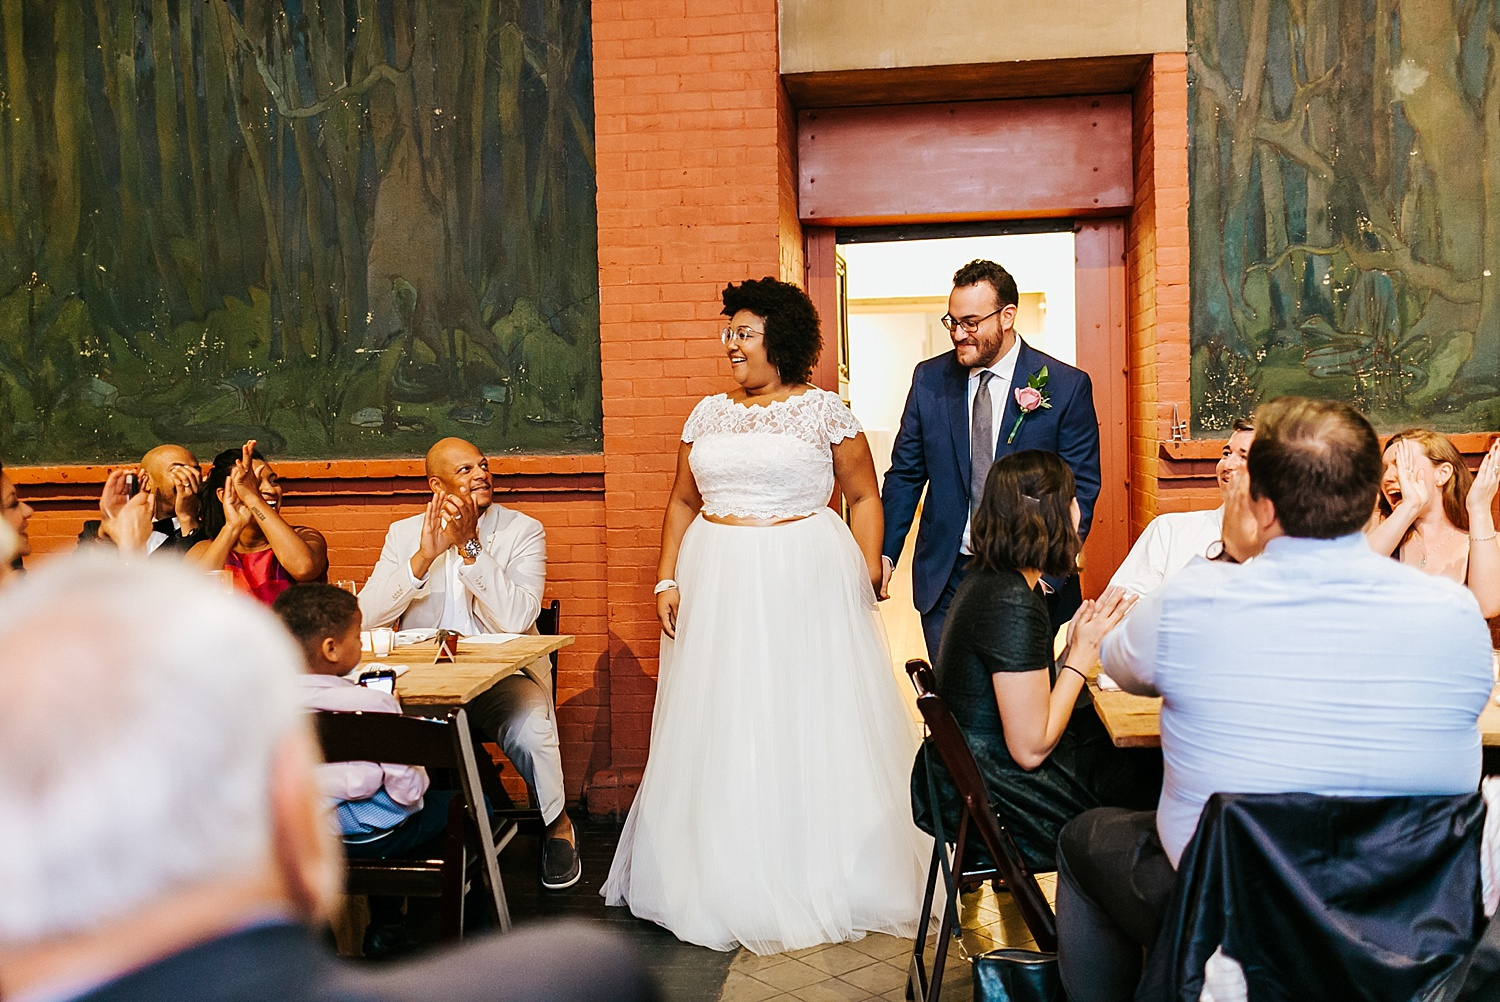 Interracial wedding couple introduction at Fleisher Art Memorial by Danfredo Photos + Films